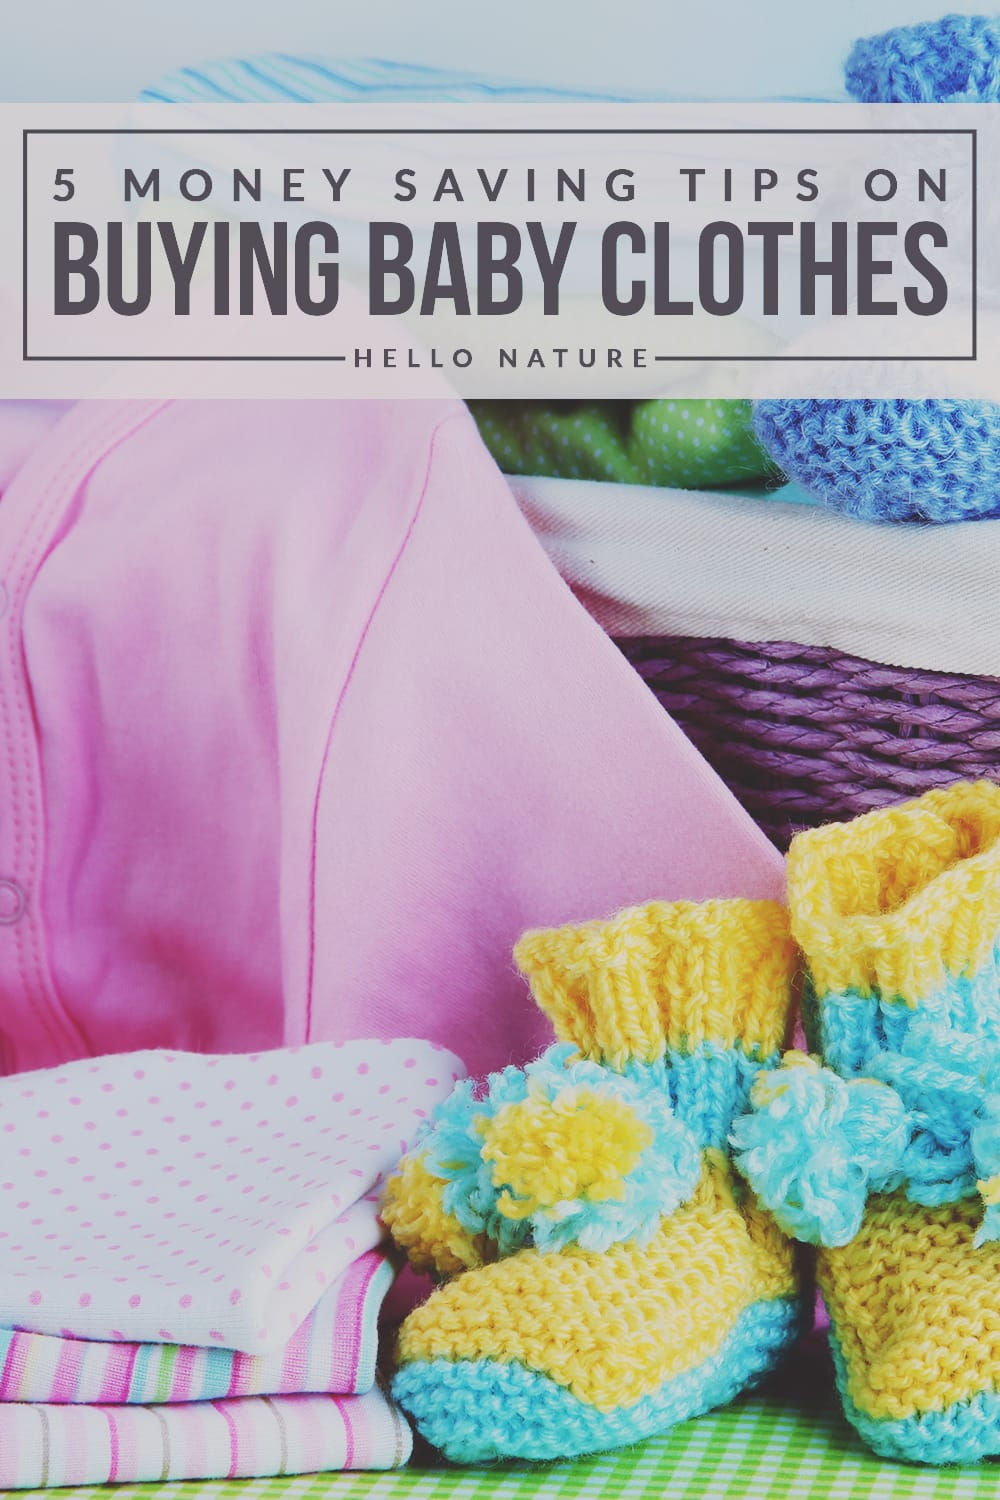 5 Money Saving Tips on Buying Baby Clothes